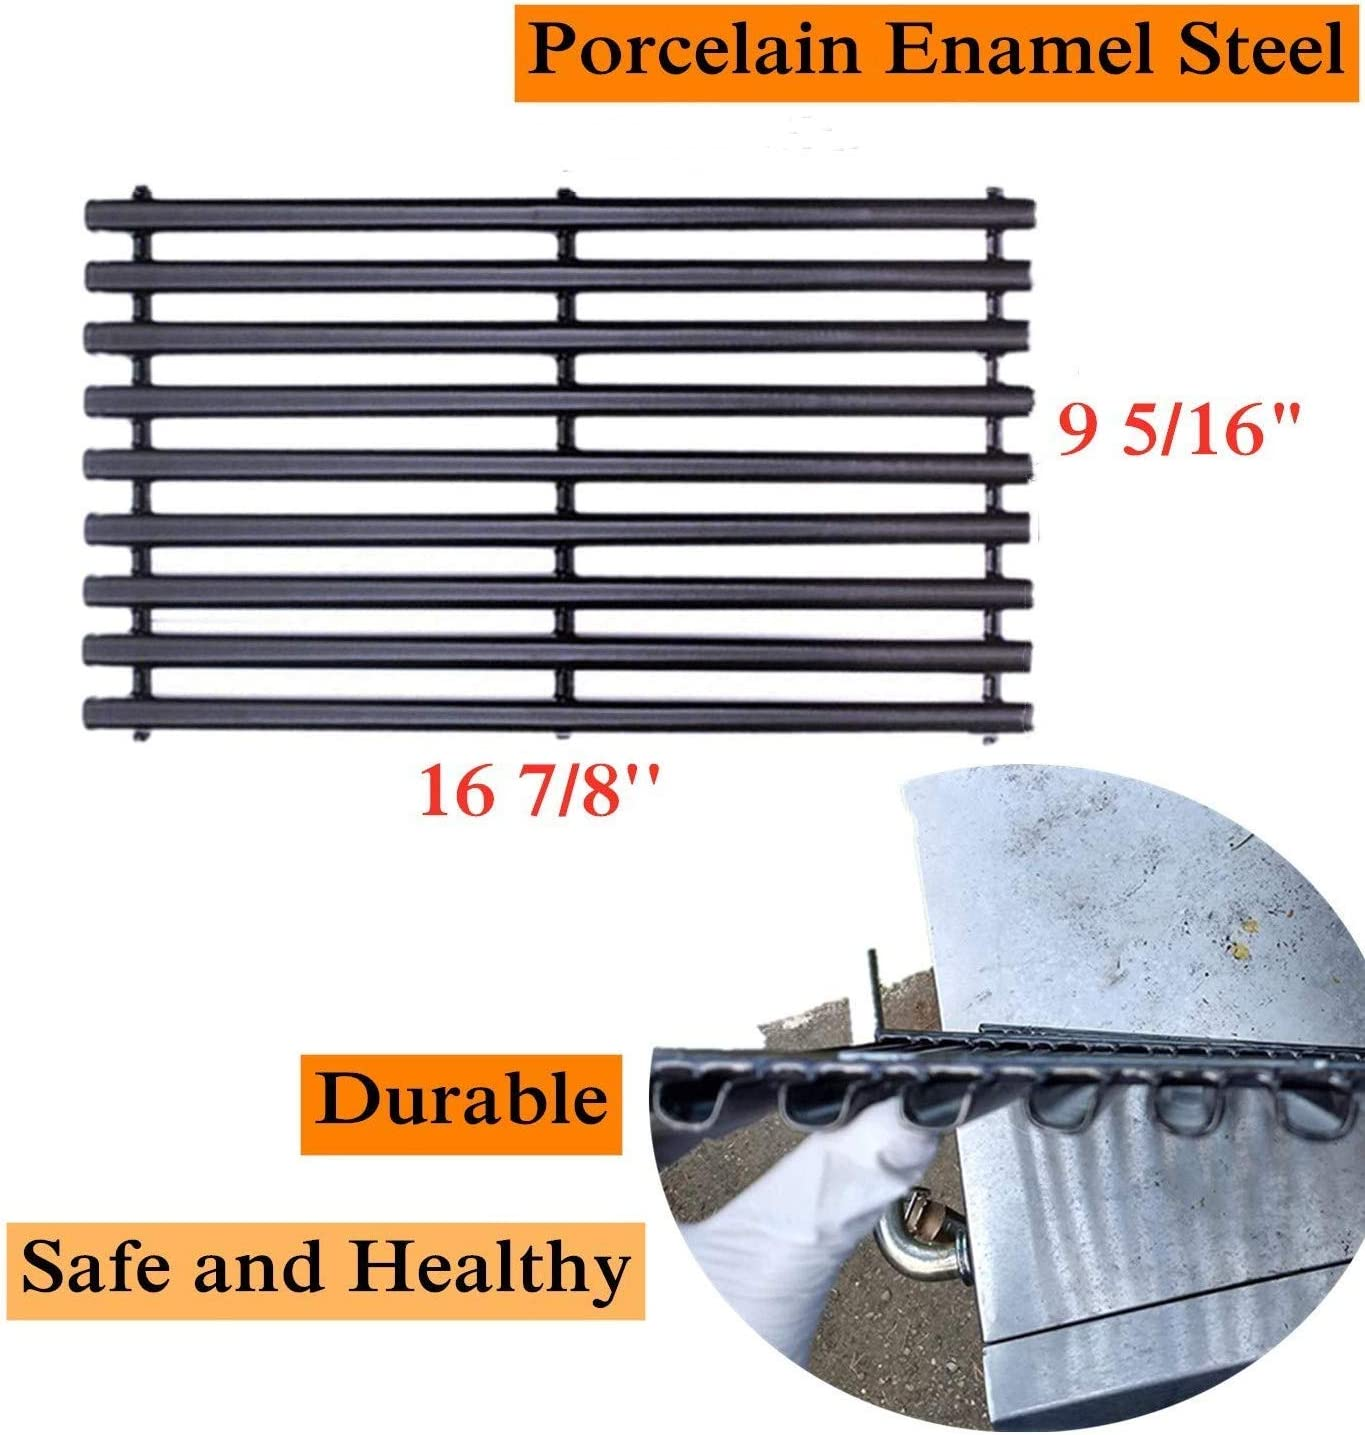 461442513 Porcelain Enameled Grates Replacement Parts for Master Chef Gas Grill WELL GRILL 3-Pack Cooking Grid Grate Barbecue Grill Grate for Charbroil 463420507 Kenmore 463420507